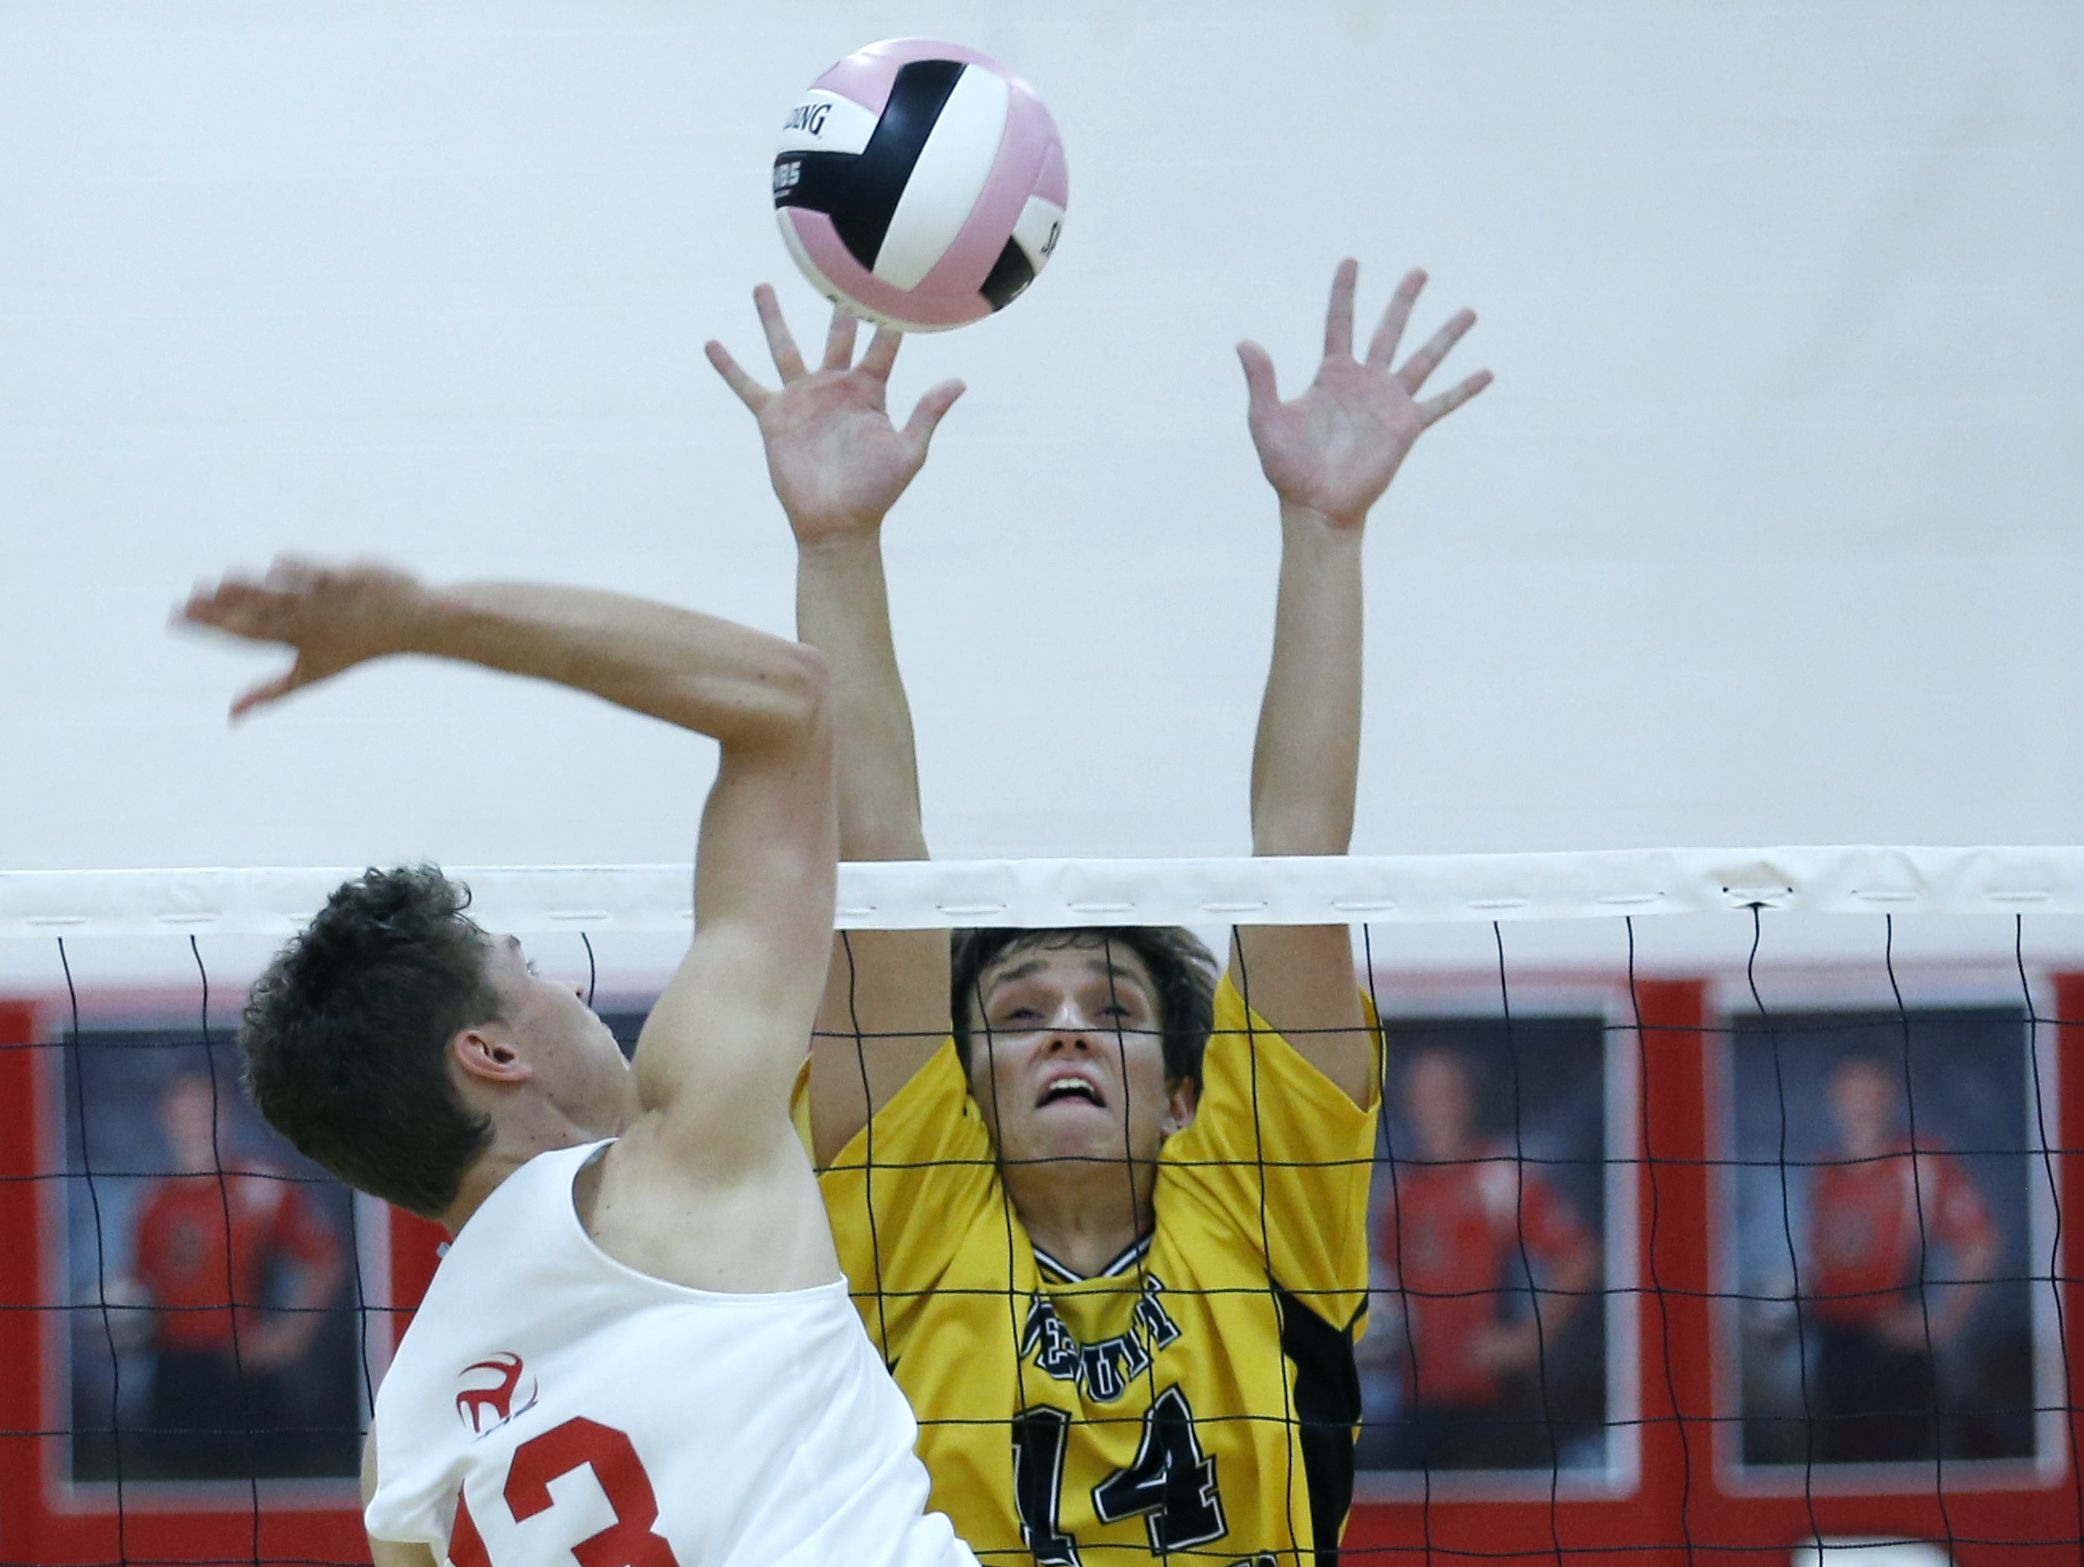 Penfield's Andy Scott and McQuaid's Christian Pawelek battle in an early season match.